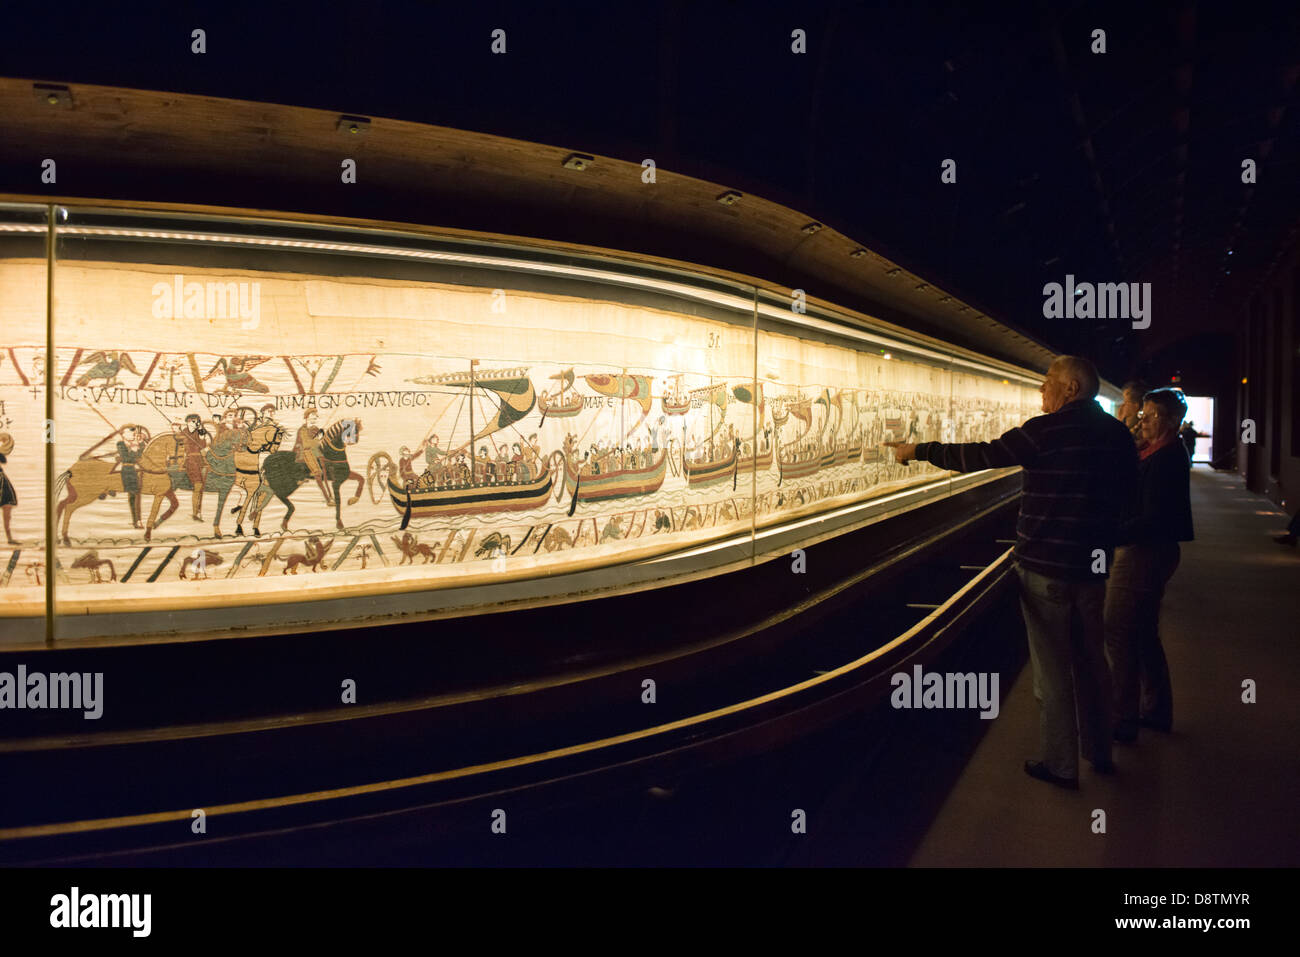 Teppich Von Bayeux Inhalt The Bayeux Tapestry French Stockfotos And The Bayeux